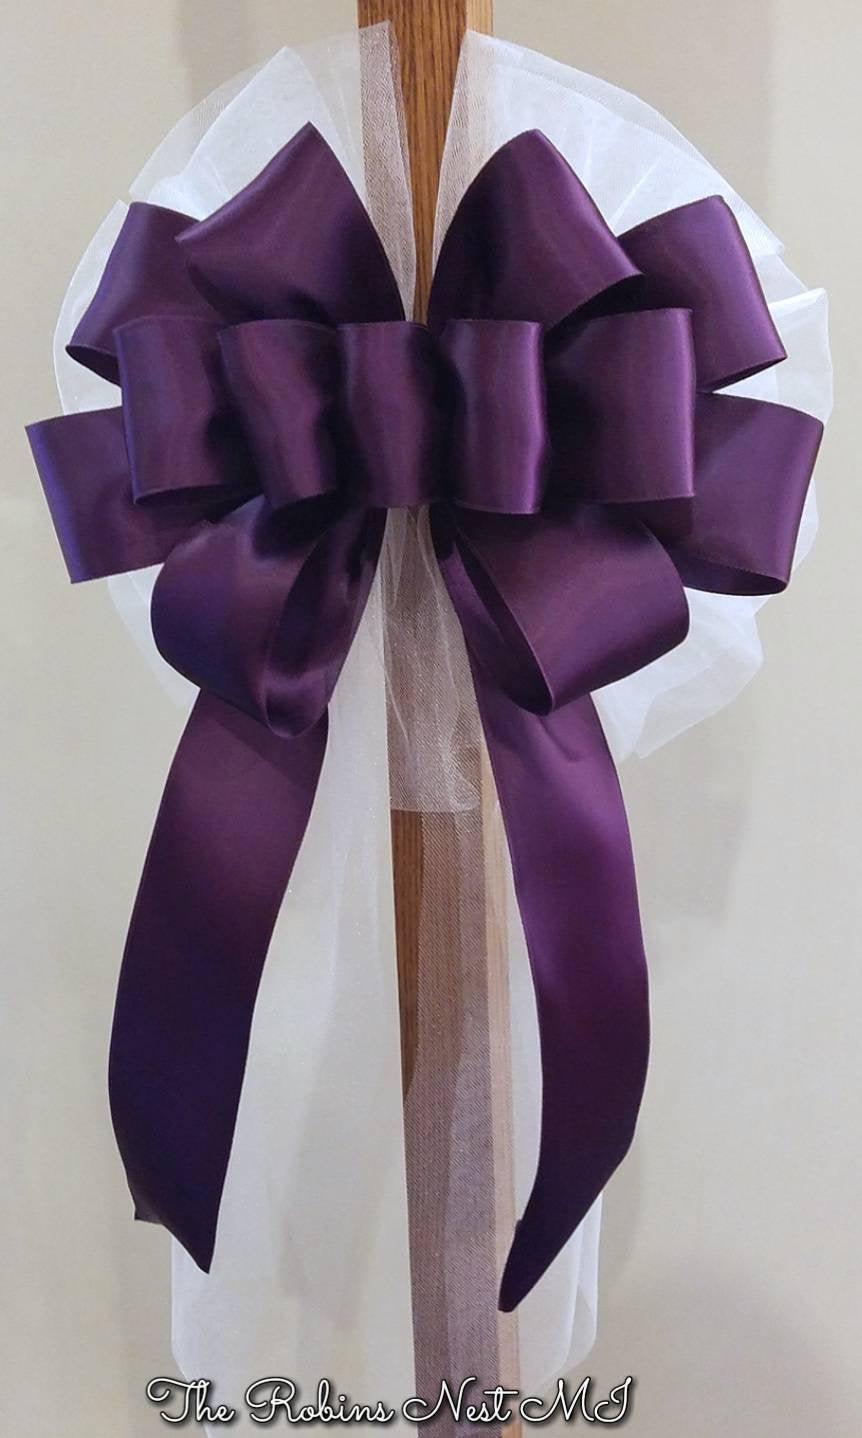 Purple Bows Eggplant Aubergine Satin Bow Wedding Church Aisle Pew Ivory Tulle Ceremony Decorations Bridal Shower Reception